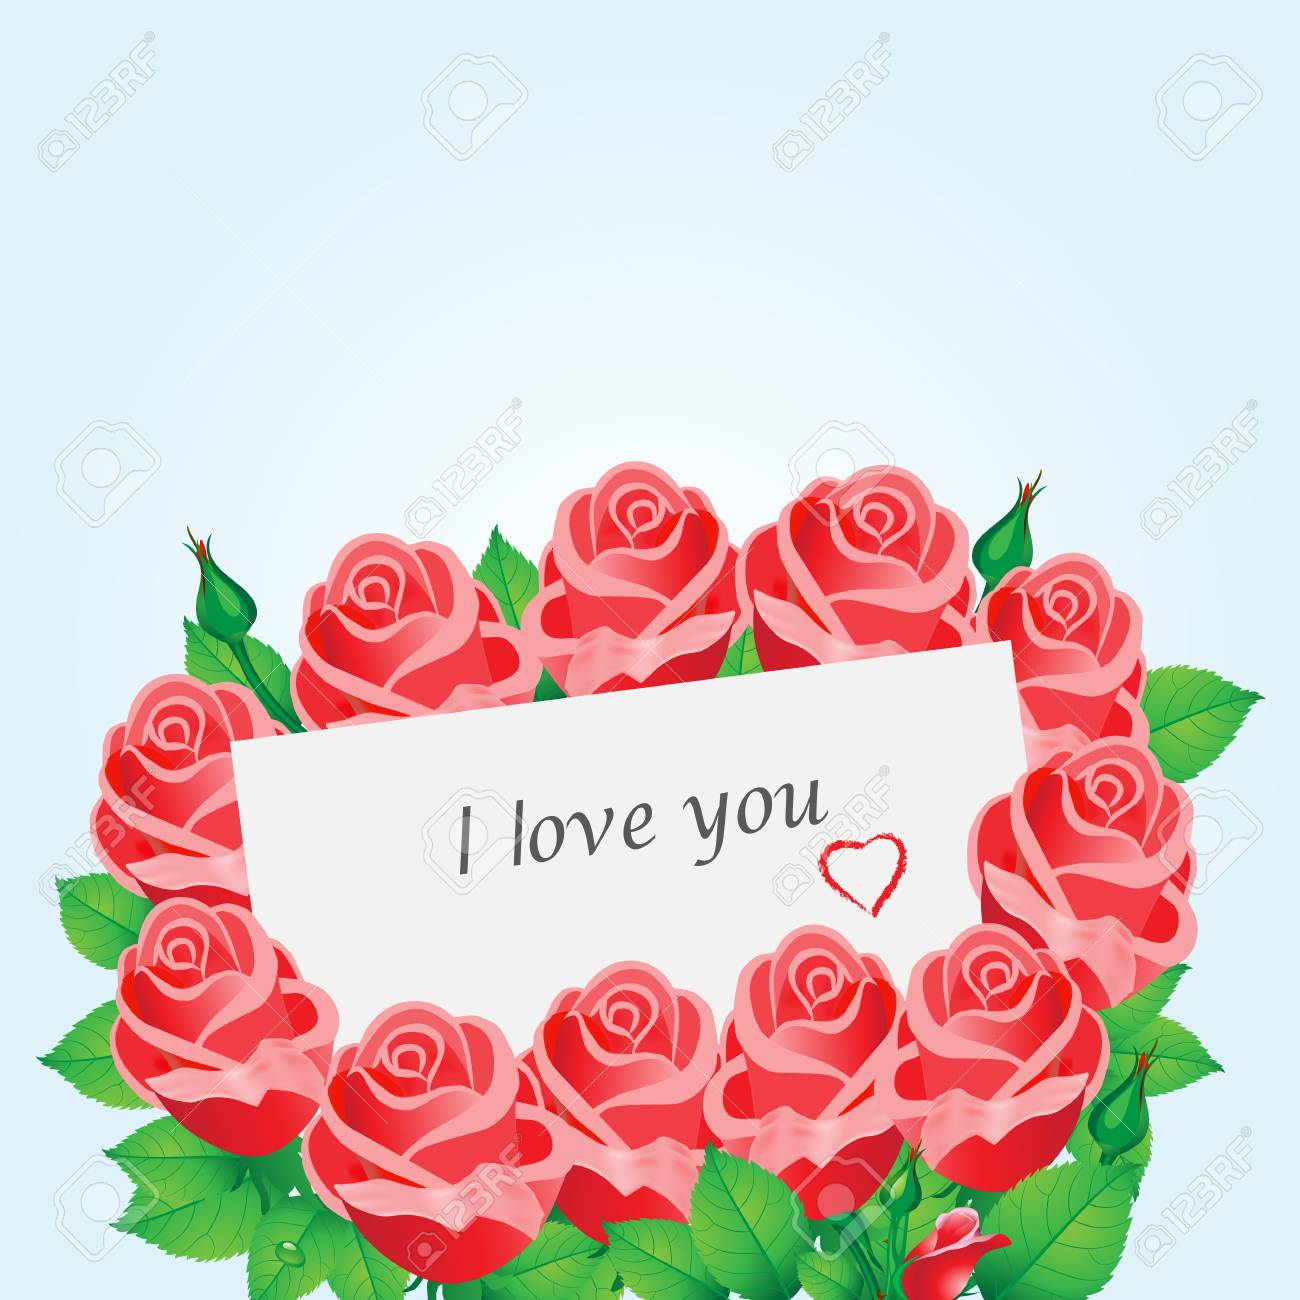 Romantic Card With Red Roses Heart And The Text I Love You Royalty Free Cliparts Vectors And Stock Illustration Image 69594130